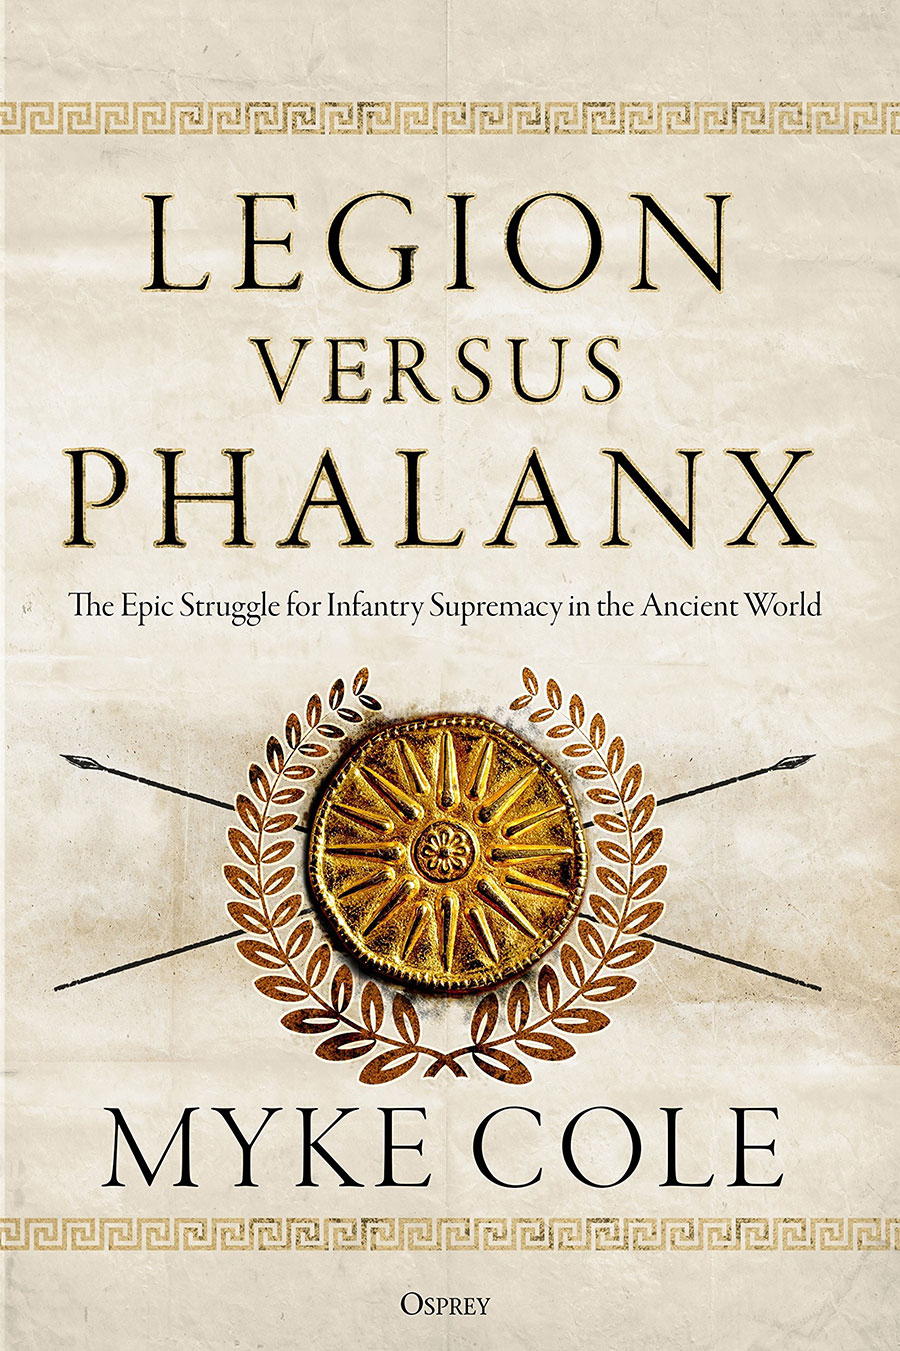 Legion Versus Phalanx by Myke Cole